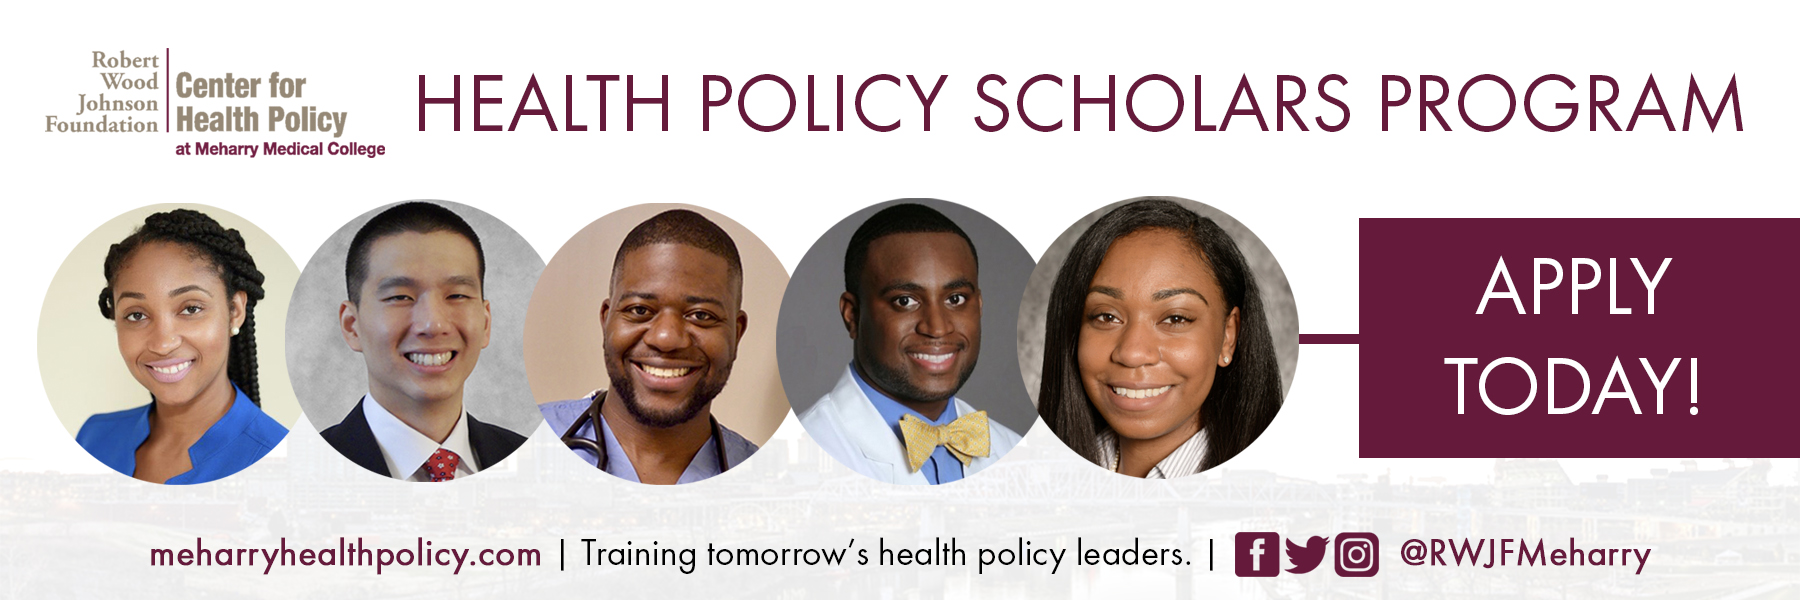 Banner promoting the Health Policy Scholars Program. Click to apply.